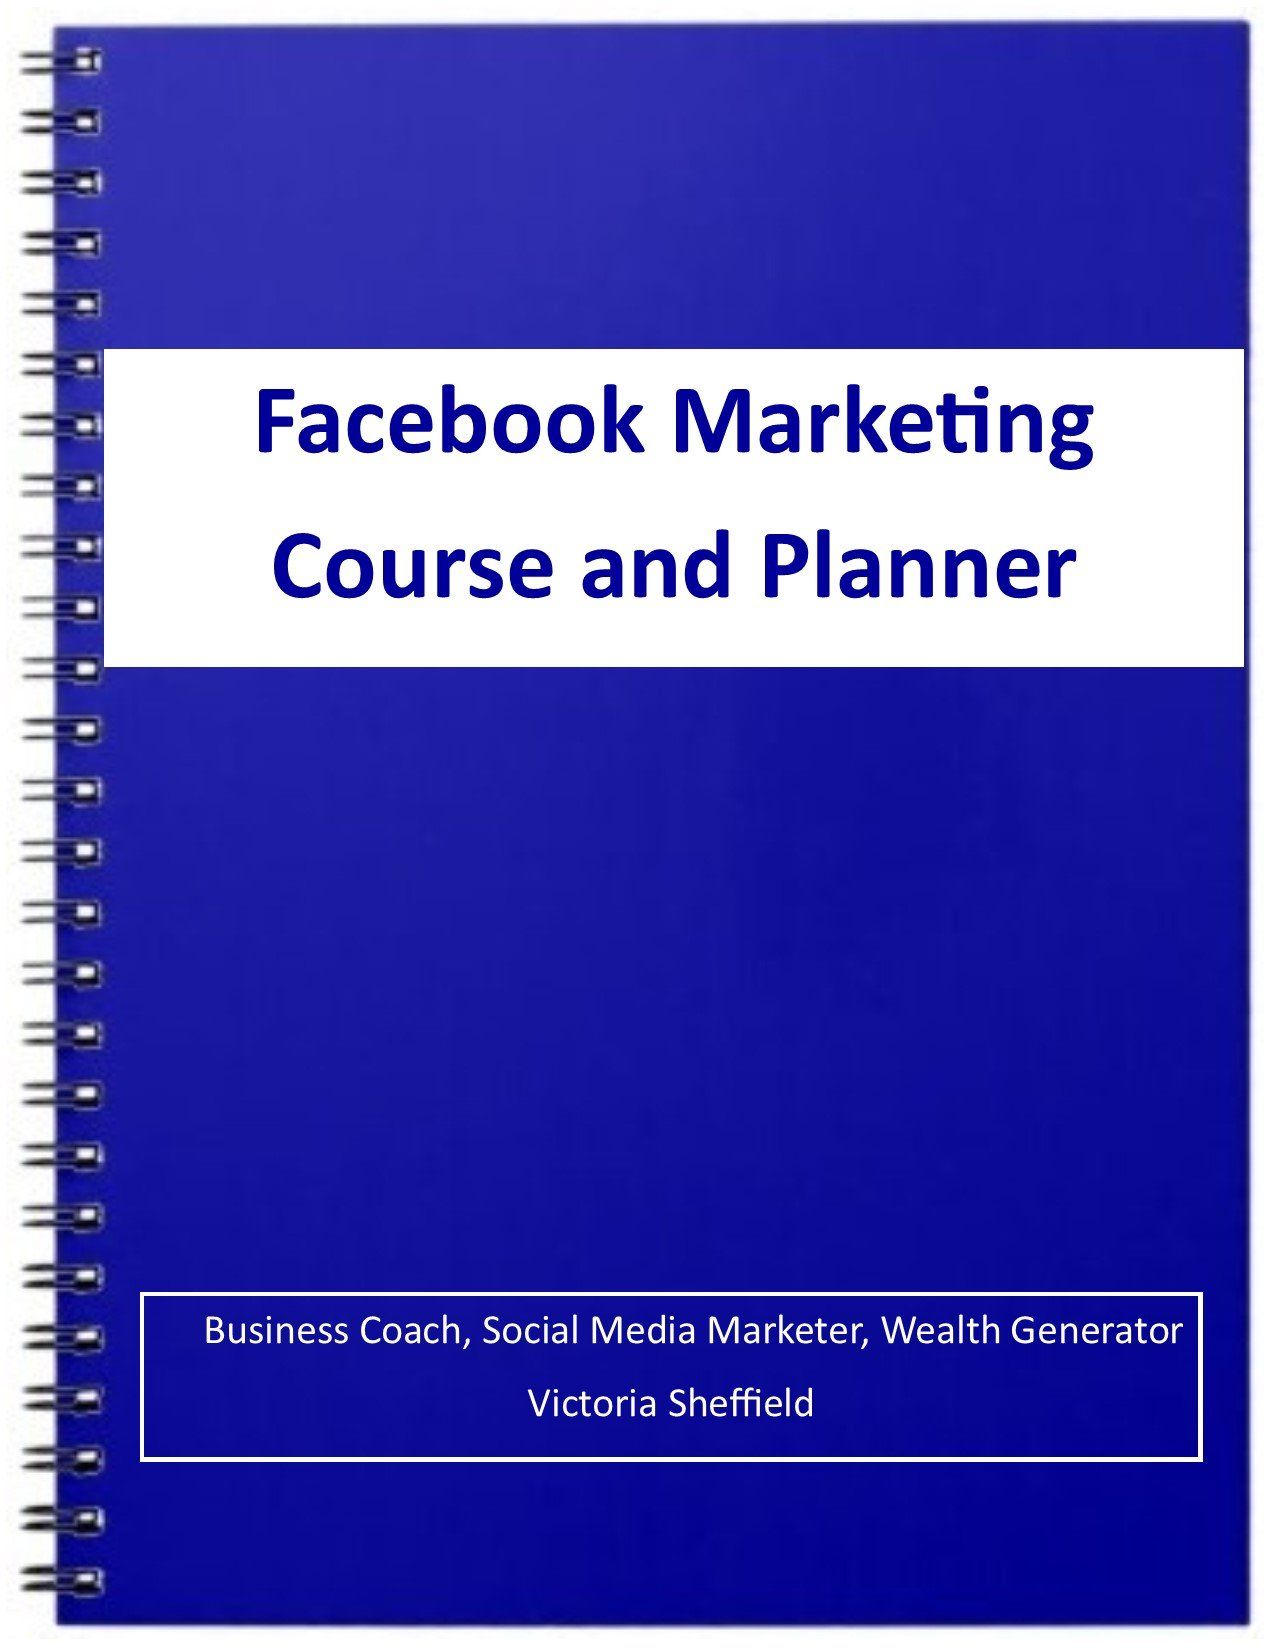 Facebook Marketing Course & Planner